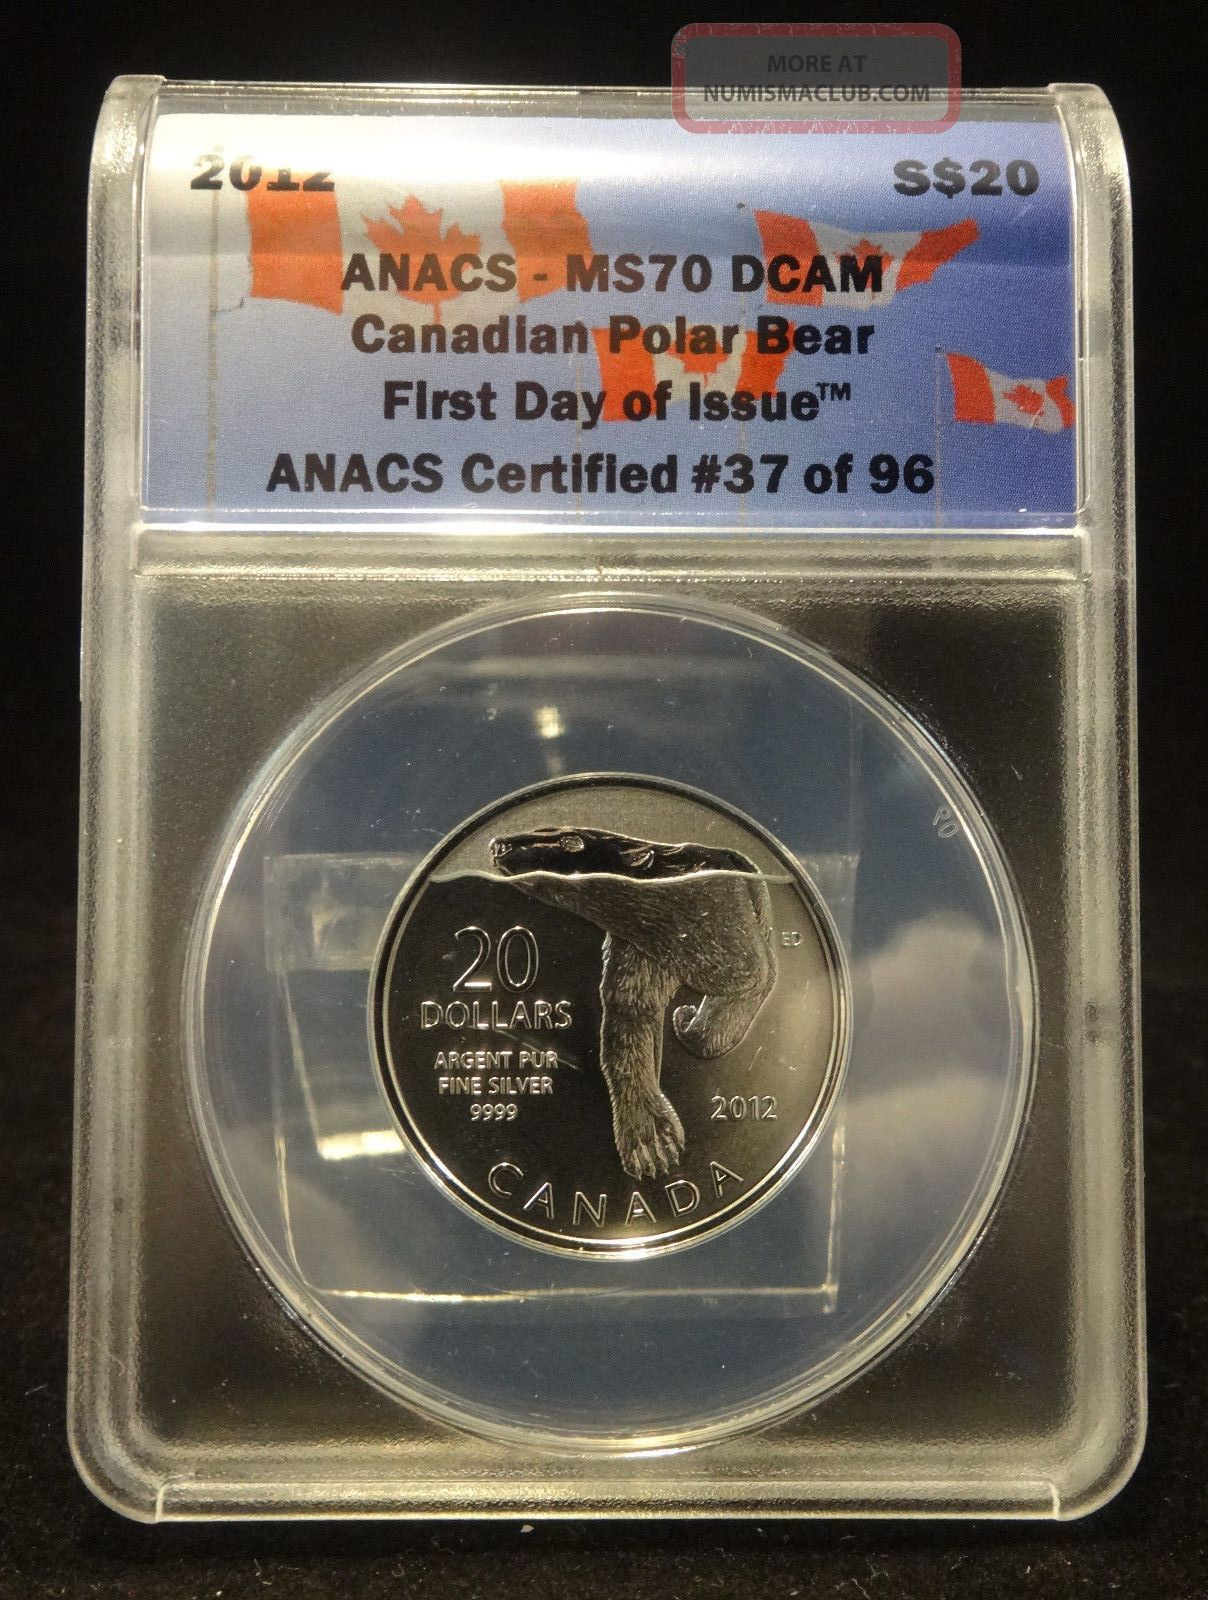 2012 S$20 Ms70 Dcam Canadian Polar Bear First Day Of Issue Anacs 37 Of 96 Coins: World photo